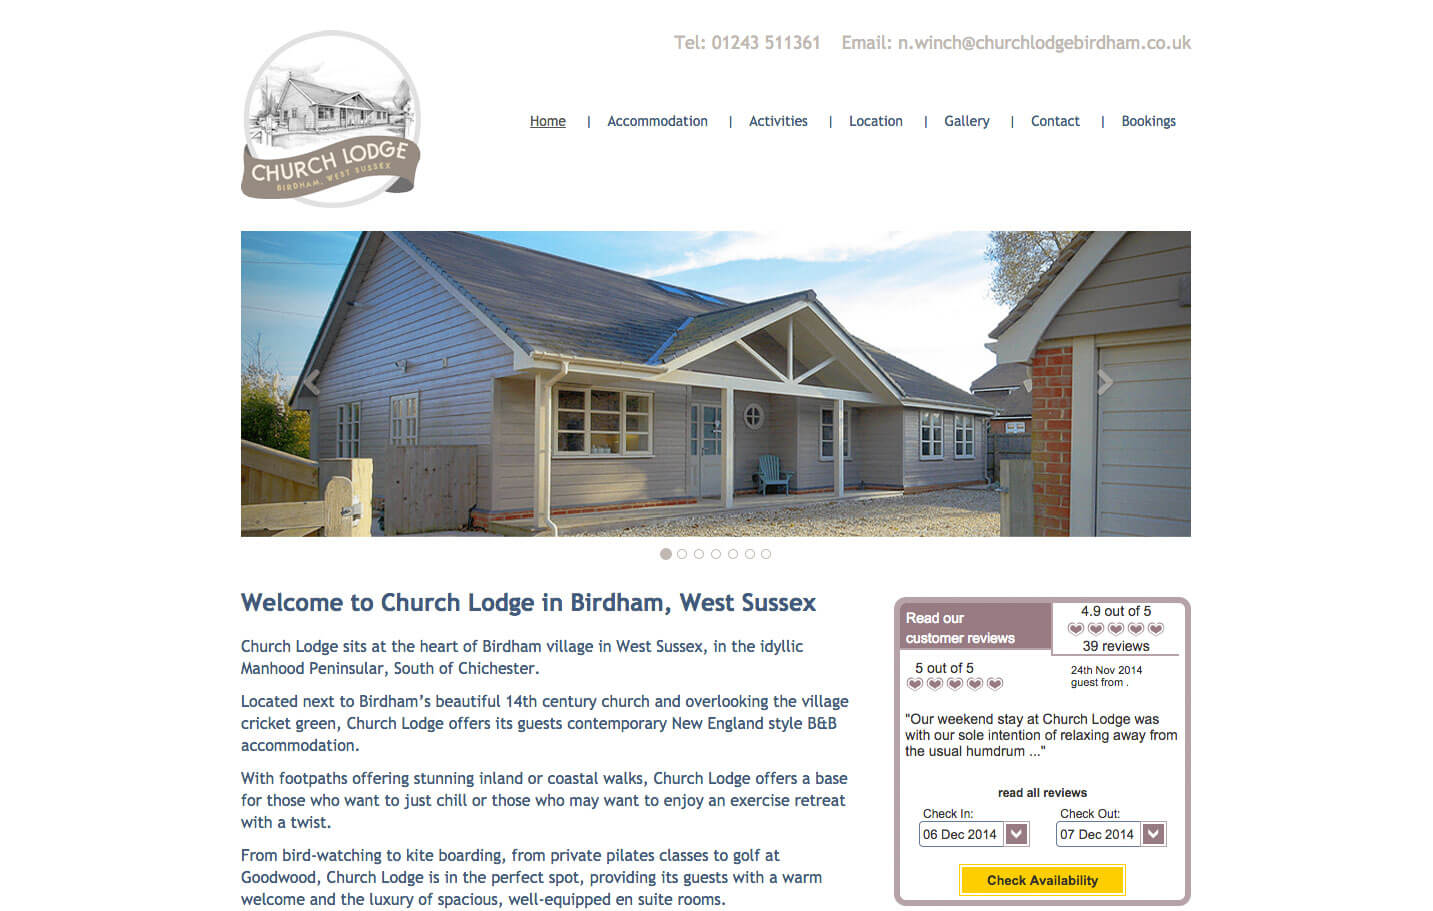 Church Lodge - Home page